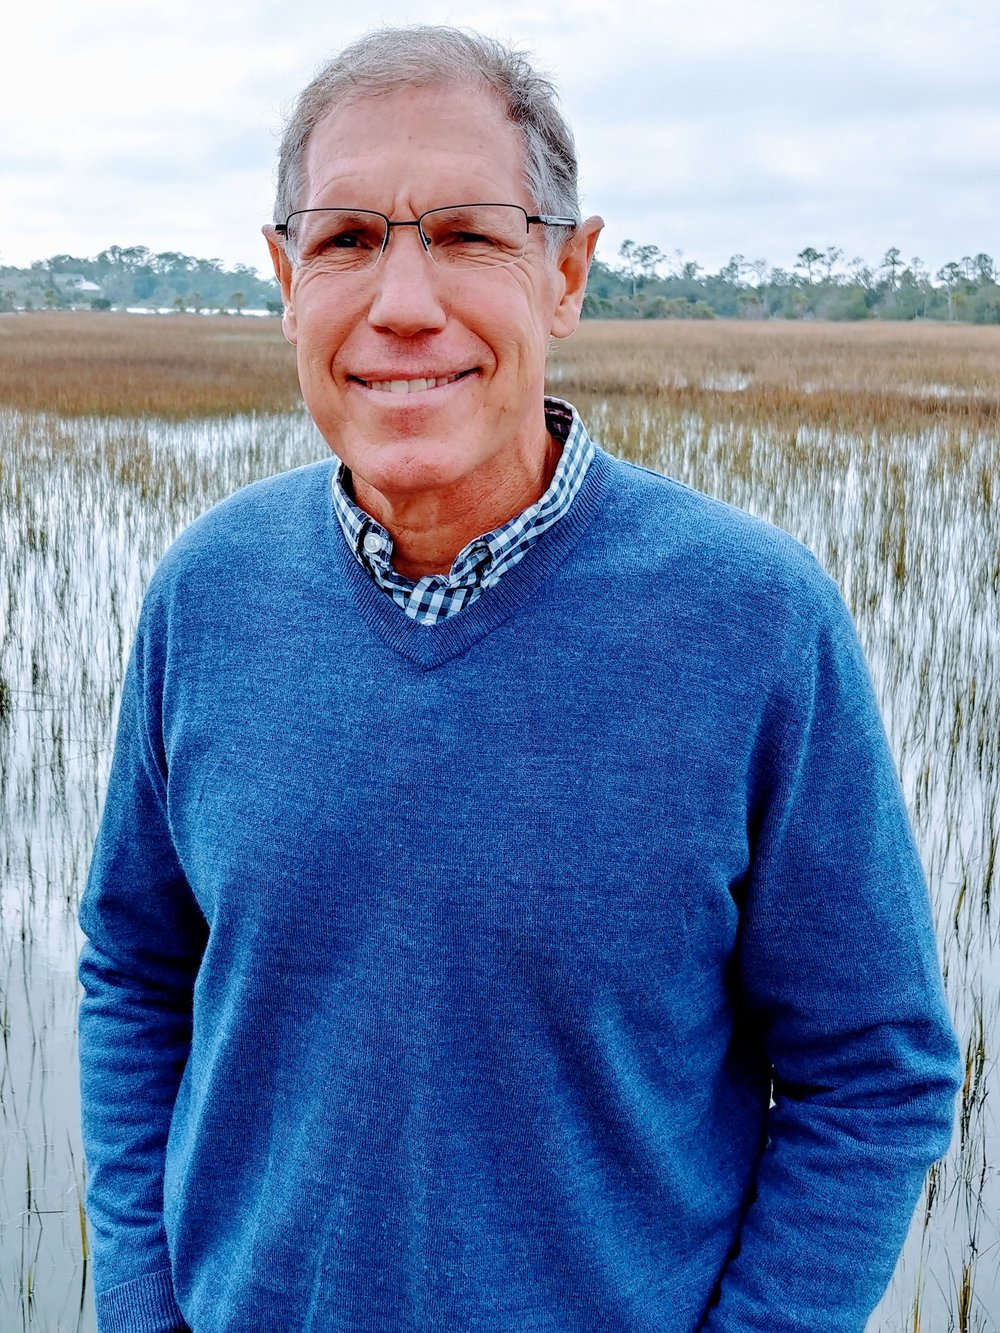 Dr. Robert Bosque, Jr. - Dr. Bob Bosque was born in Germany while his father served in the USAF. After graduating from Windsor Forest High School, Dr. Bosque completed his undergraduate studies at Armstrong Atlantic State University. He earned his Doctor of Dental Medicine degree from the Medical College of Georgia in 1982 and opened his practice soon after.